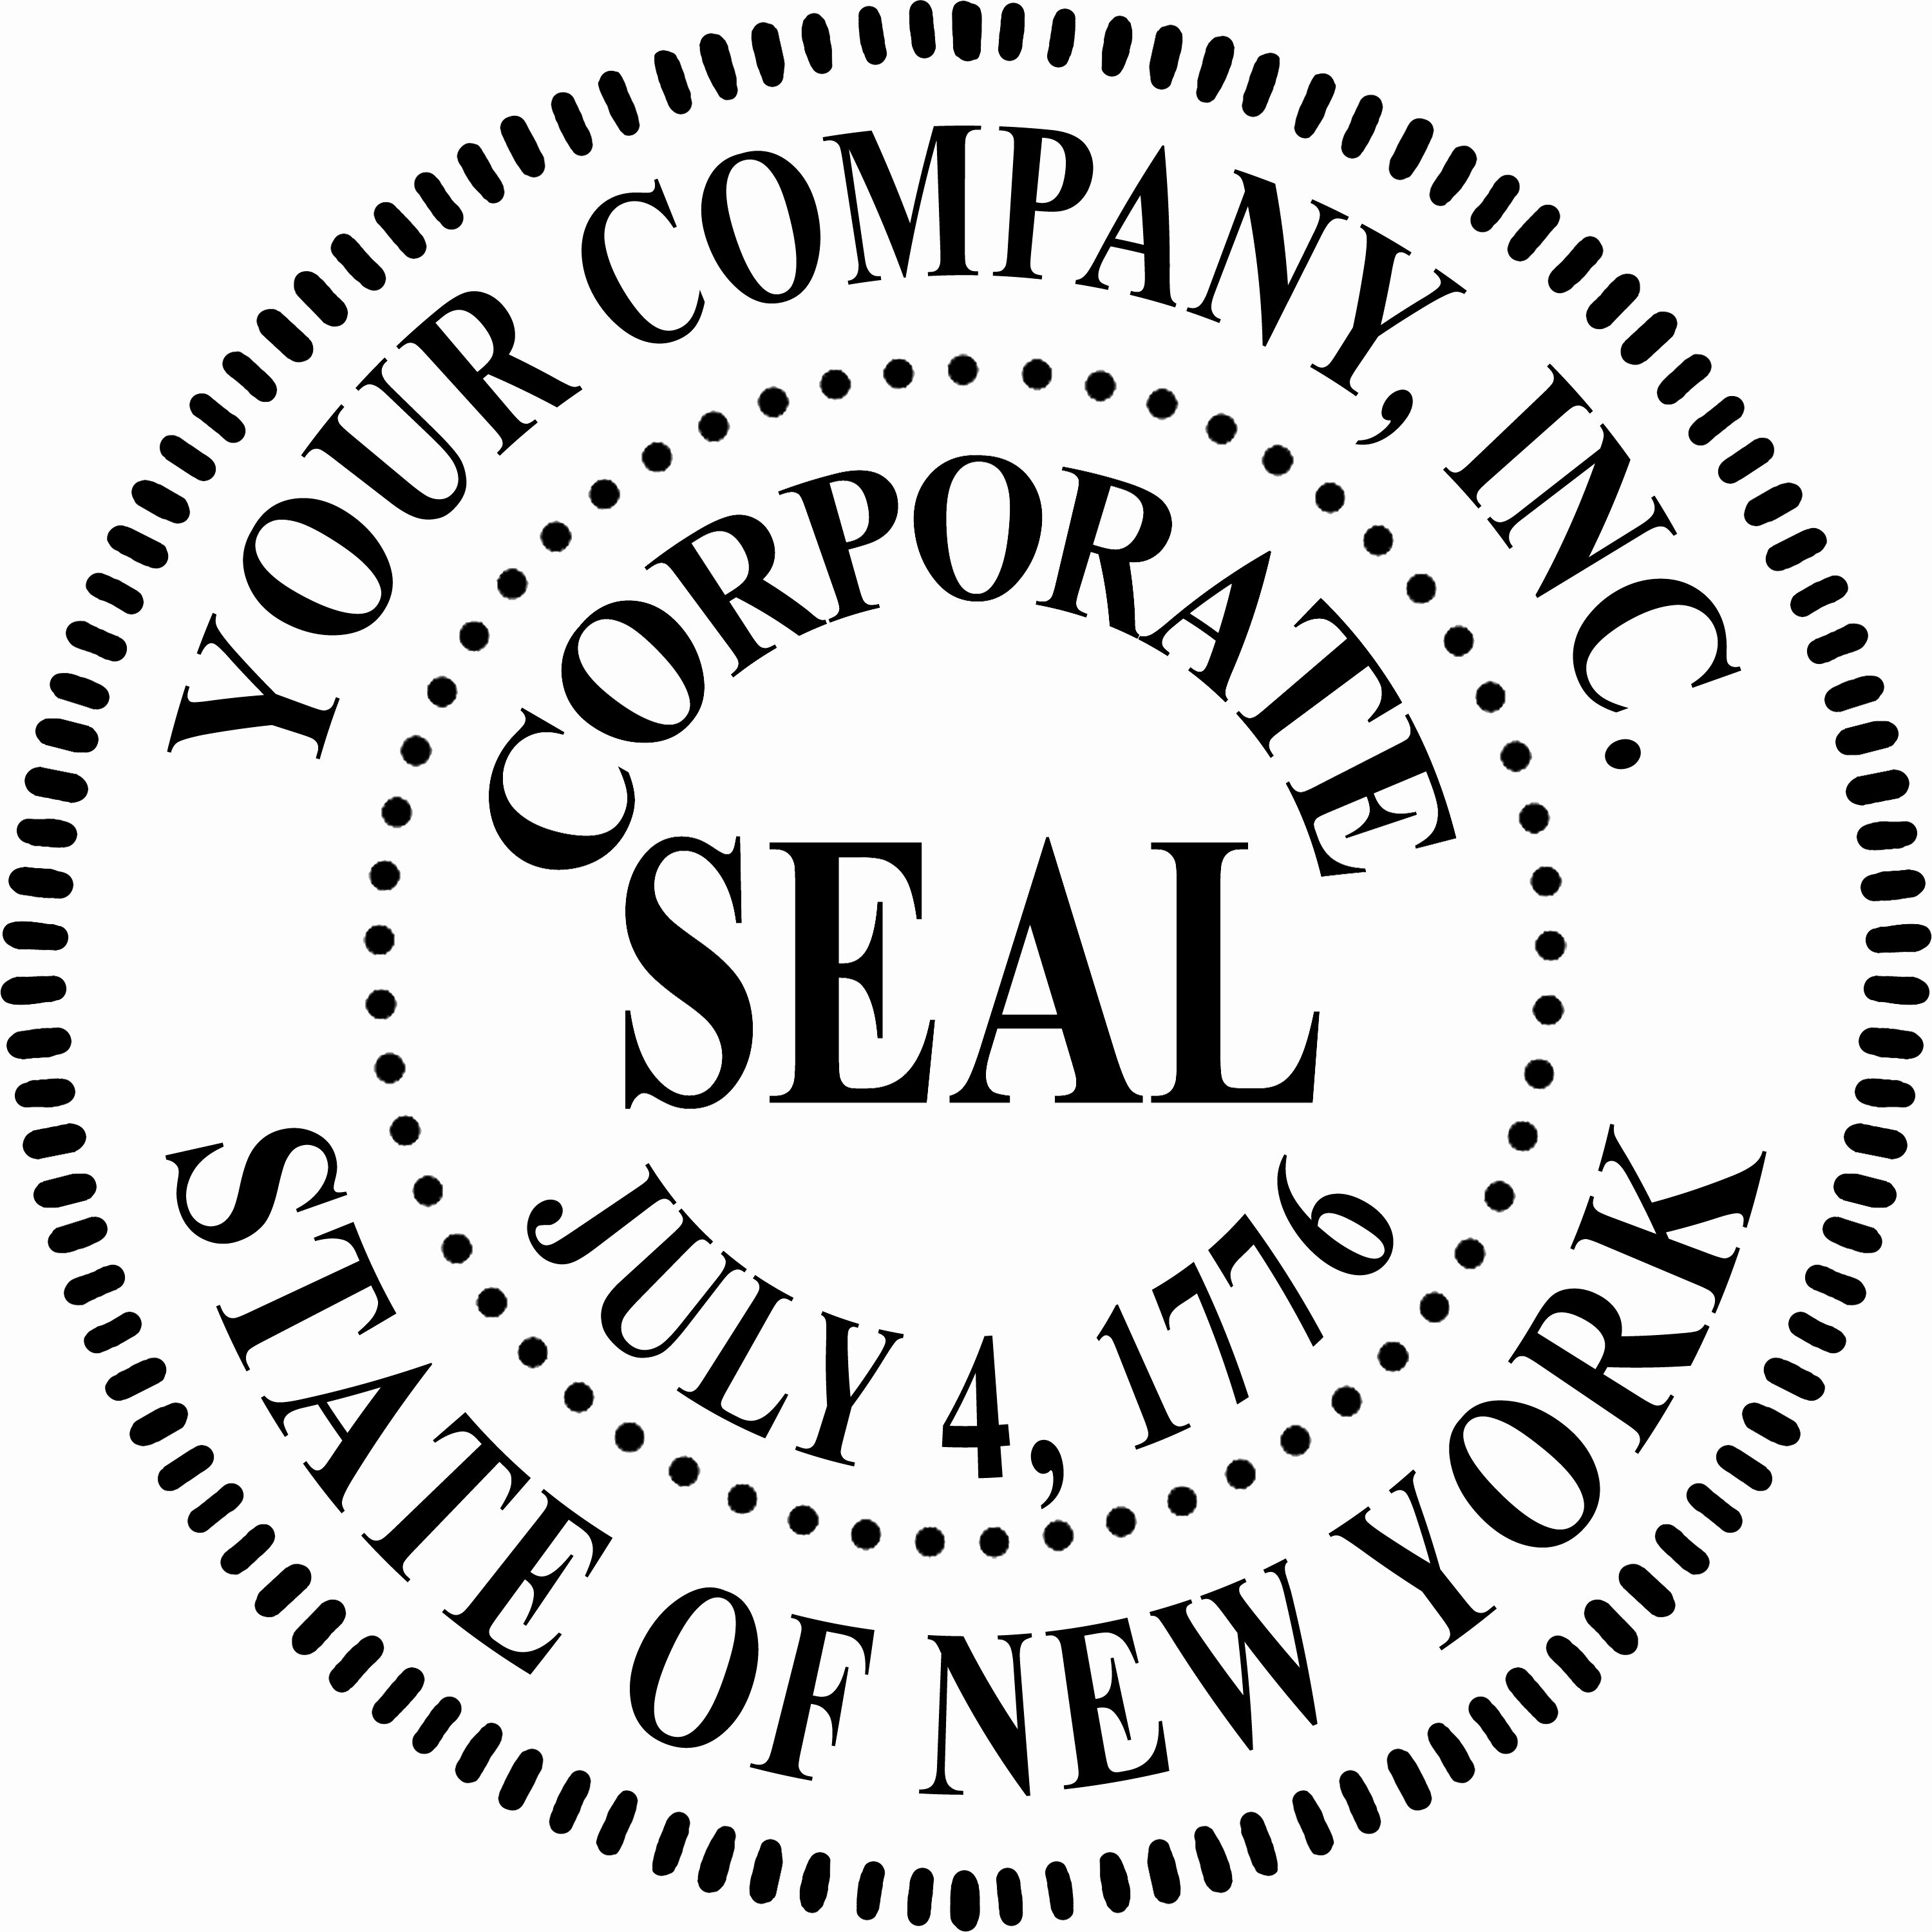 Corporate Seal Template Word Lovely Corporation Setup & Dissolution R&g Brenner